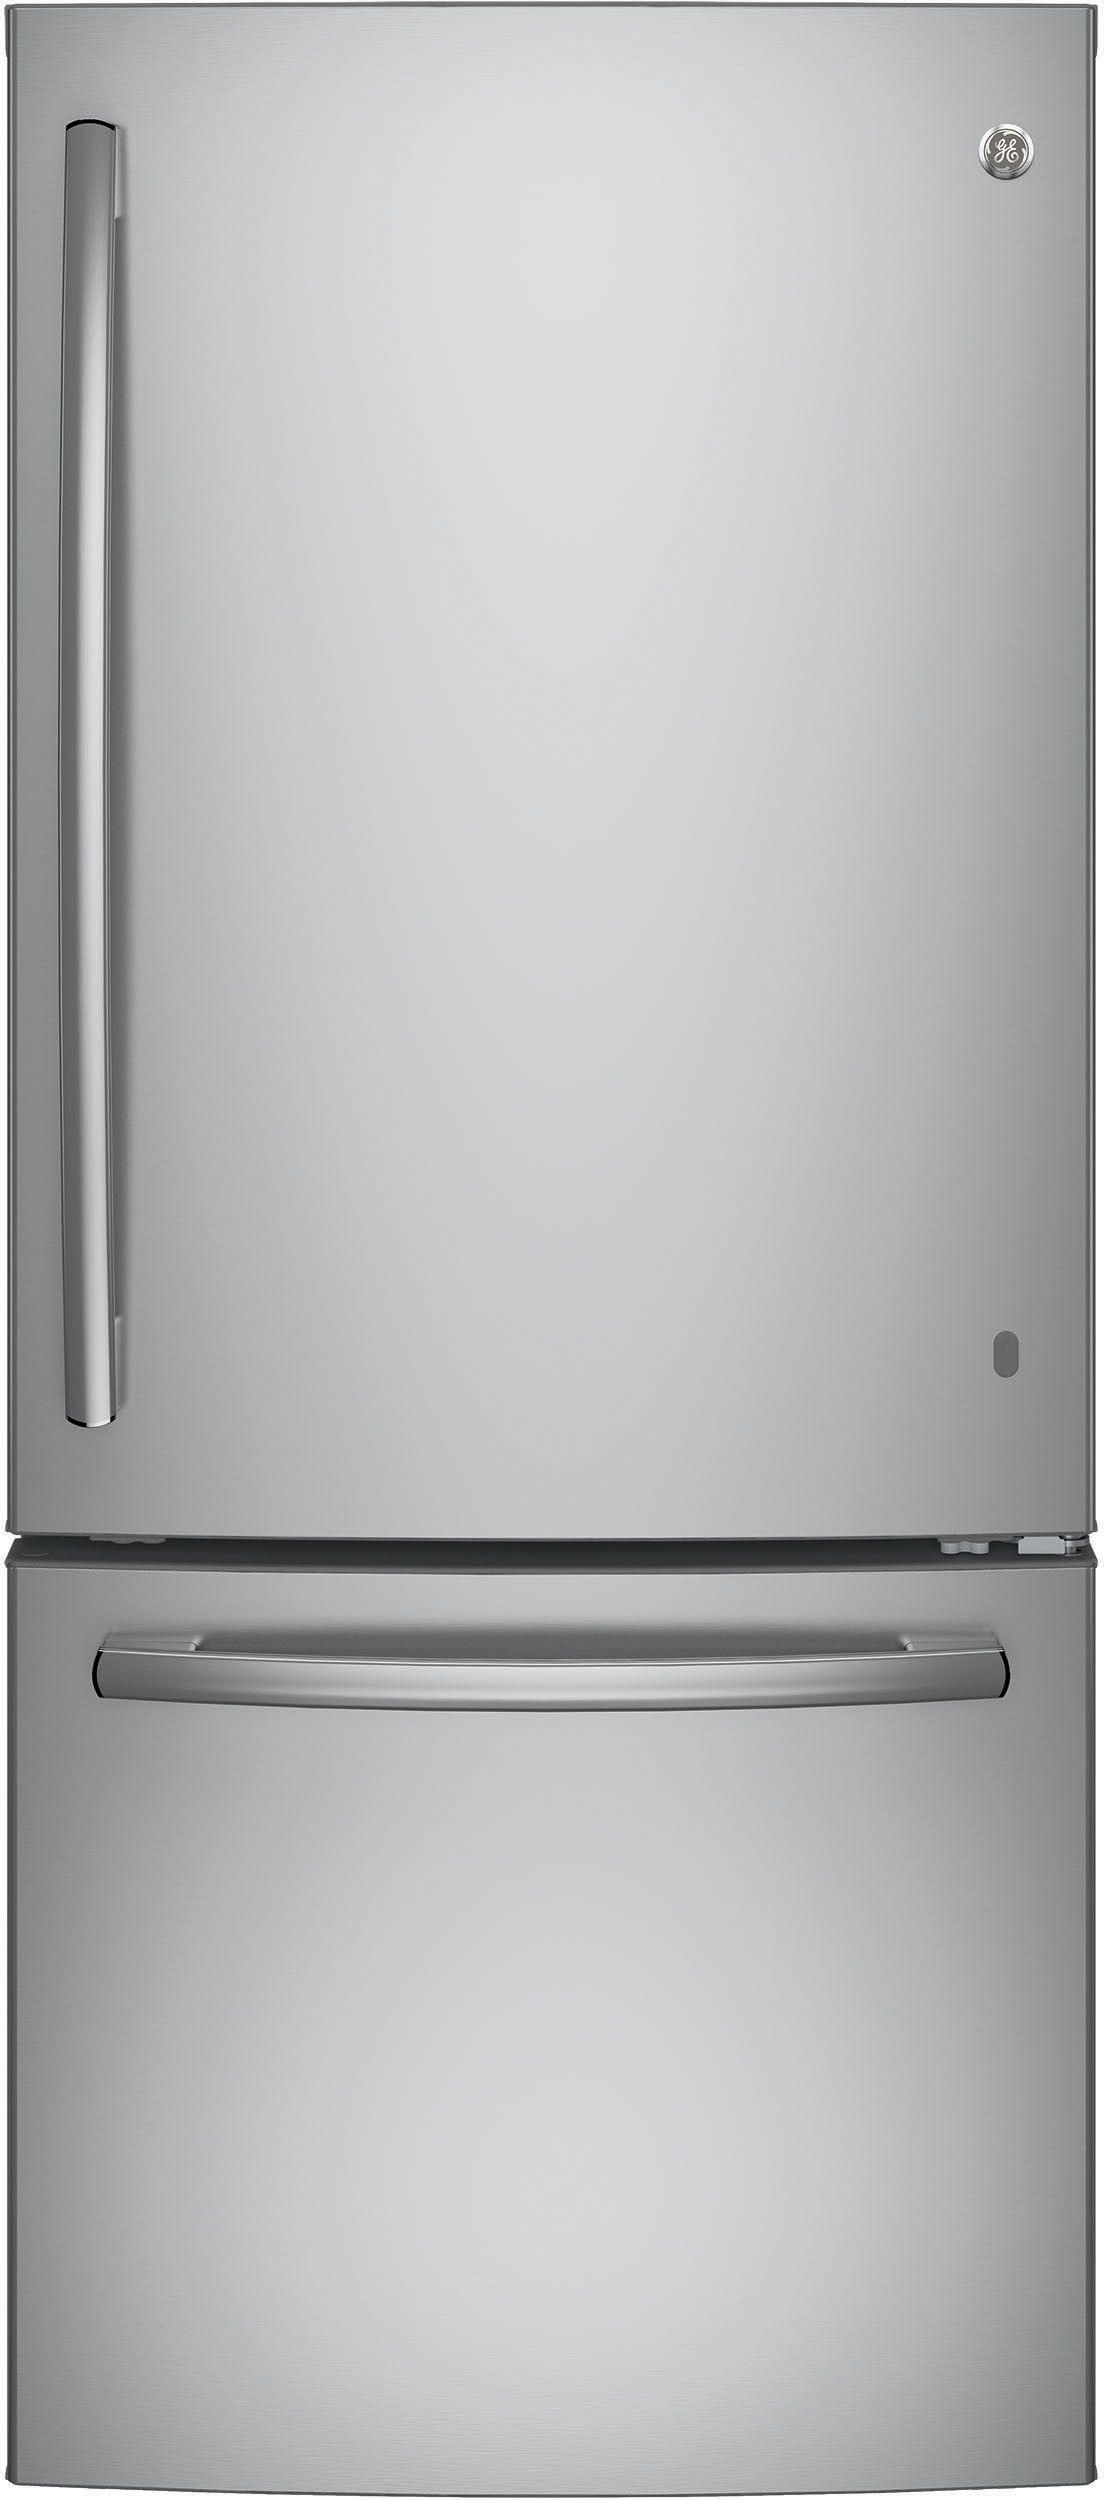 Ge Gbe21dskss 30 Inch Bottom Freezer Refrigerator With 20 9 Cu Ft Capacity Led Lighting 2 Ad Bottom Freezer Refrigerator Bottom Freezer Adjustable Shelving